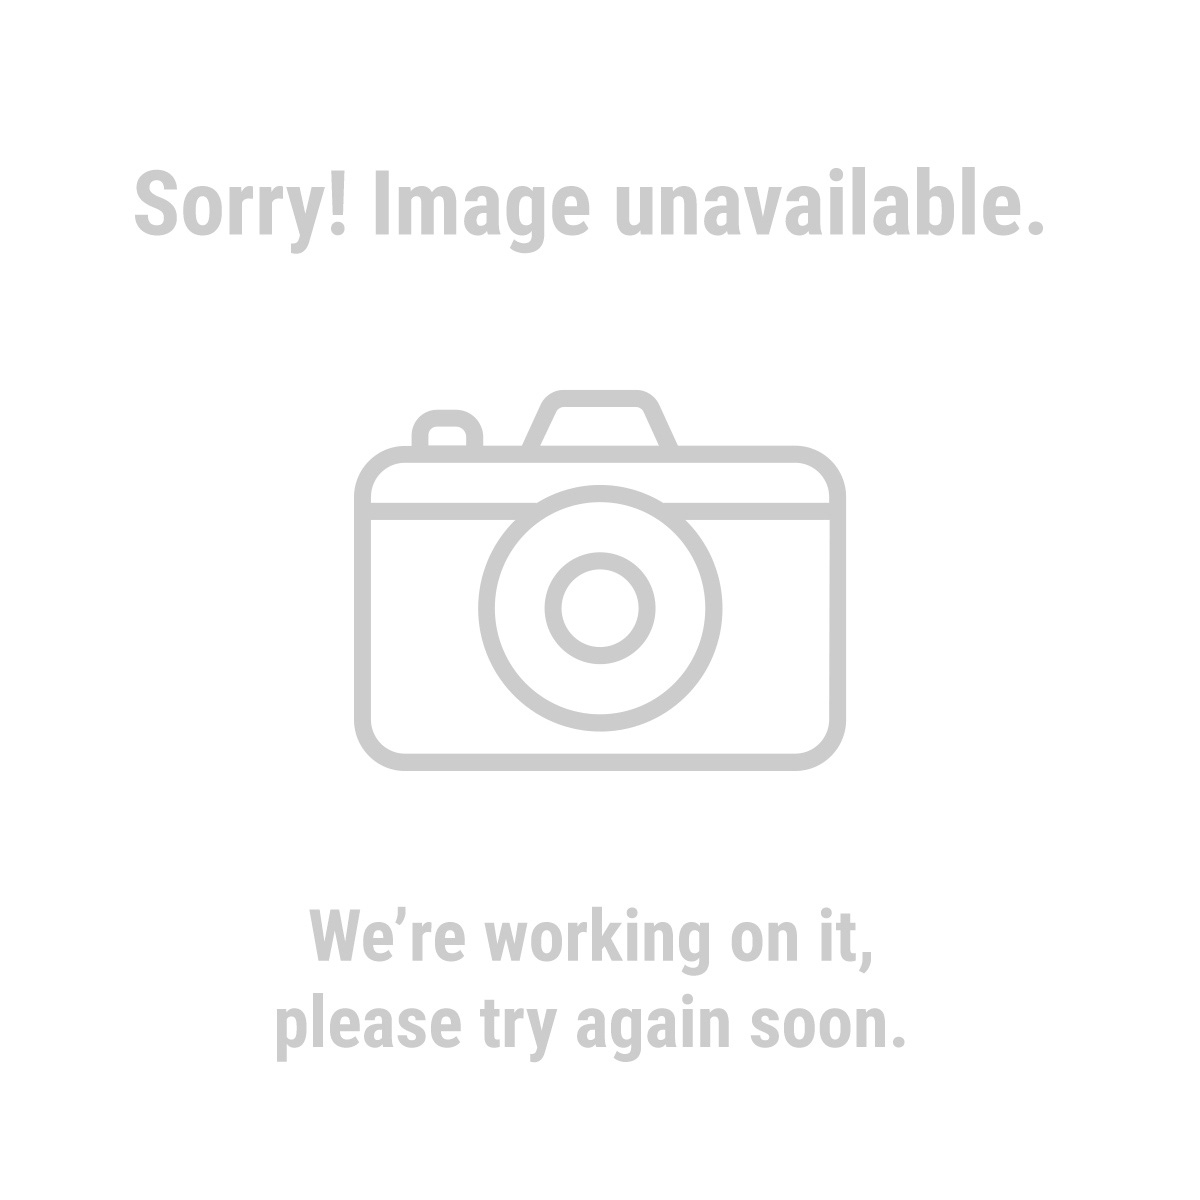 mig welder wiring diagram air conditioner manual chicago electric 170 get free